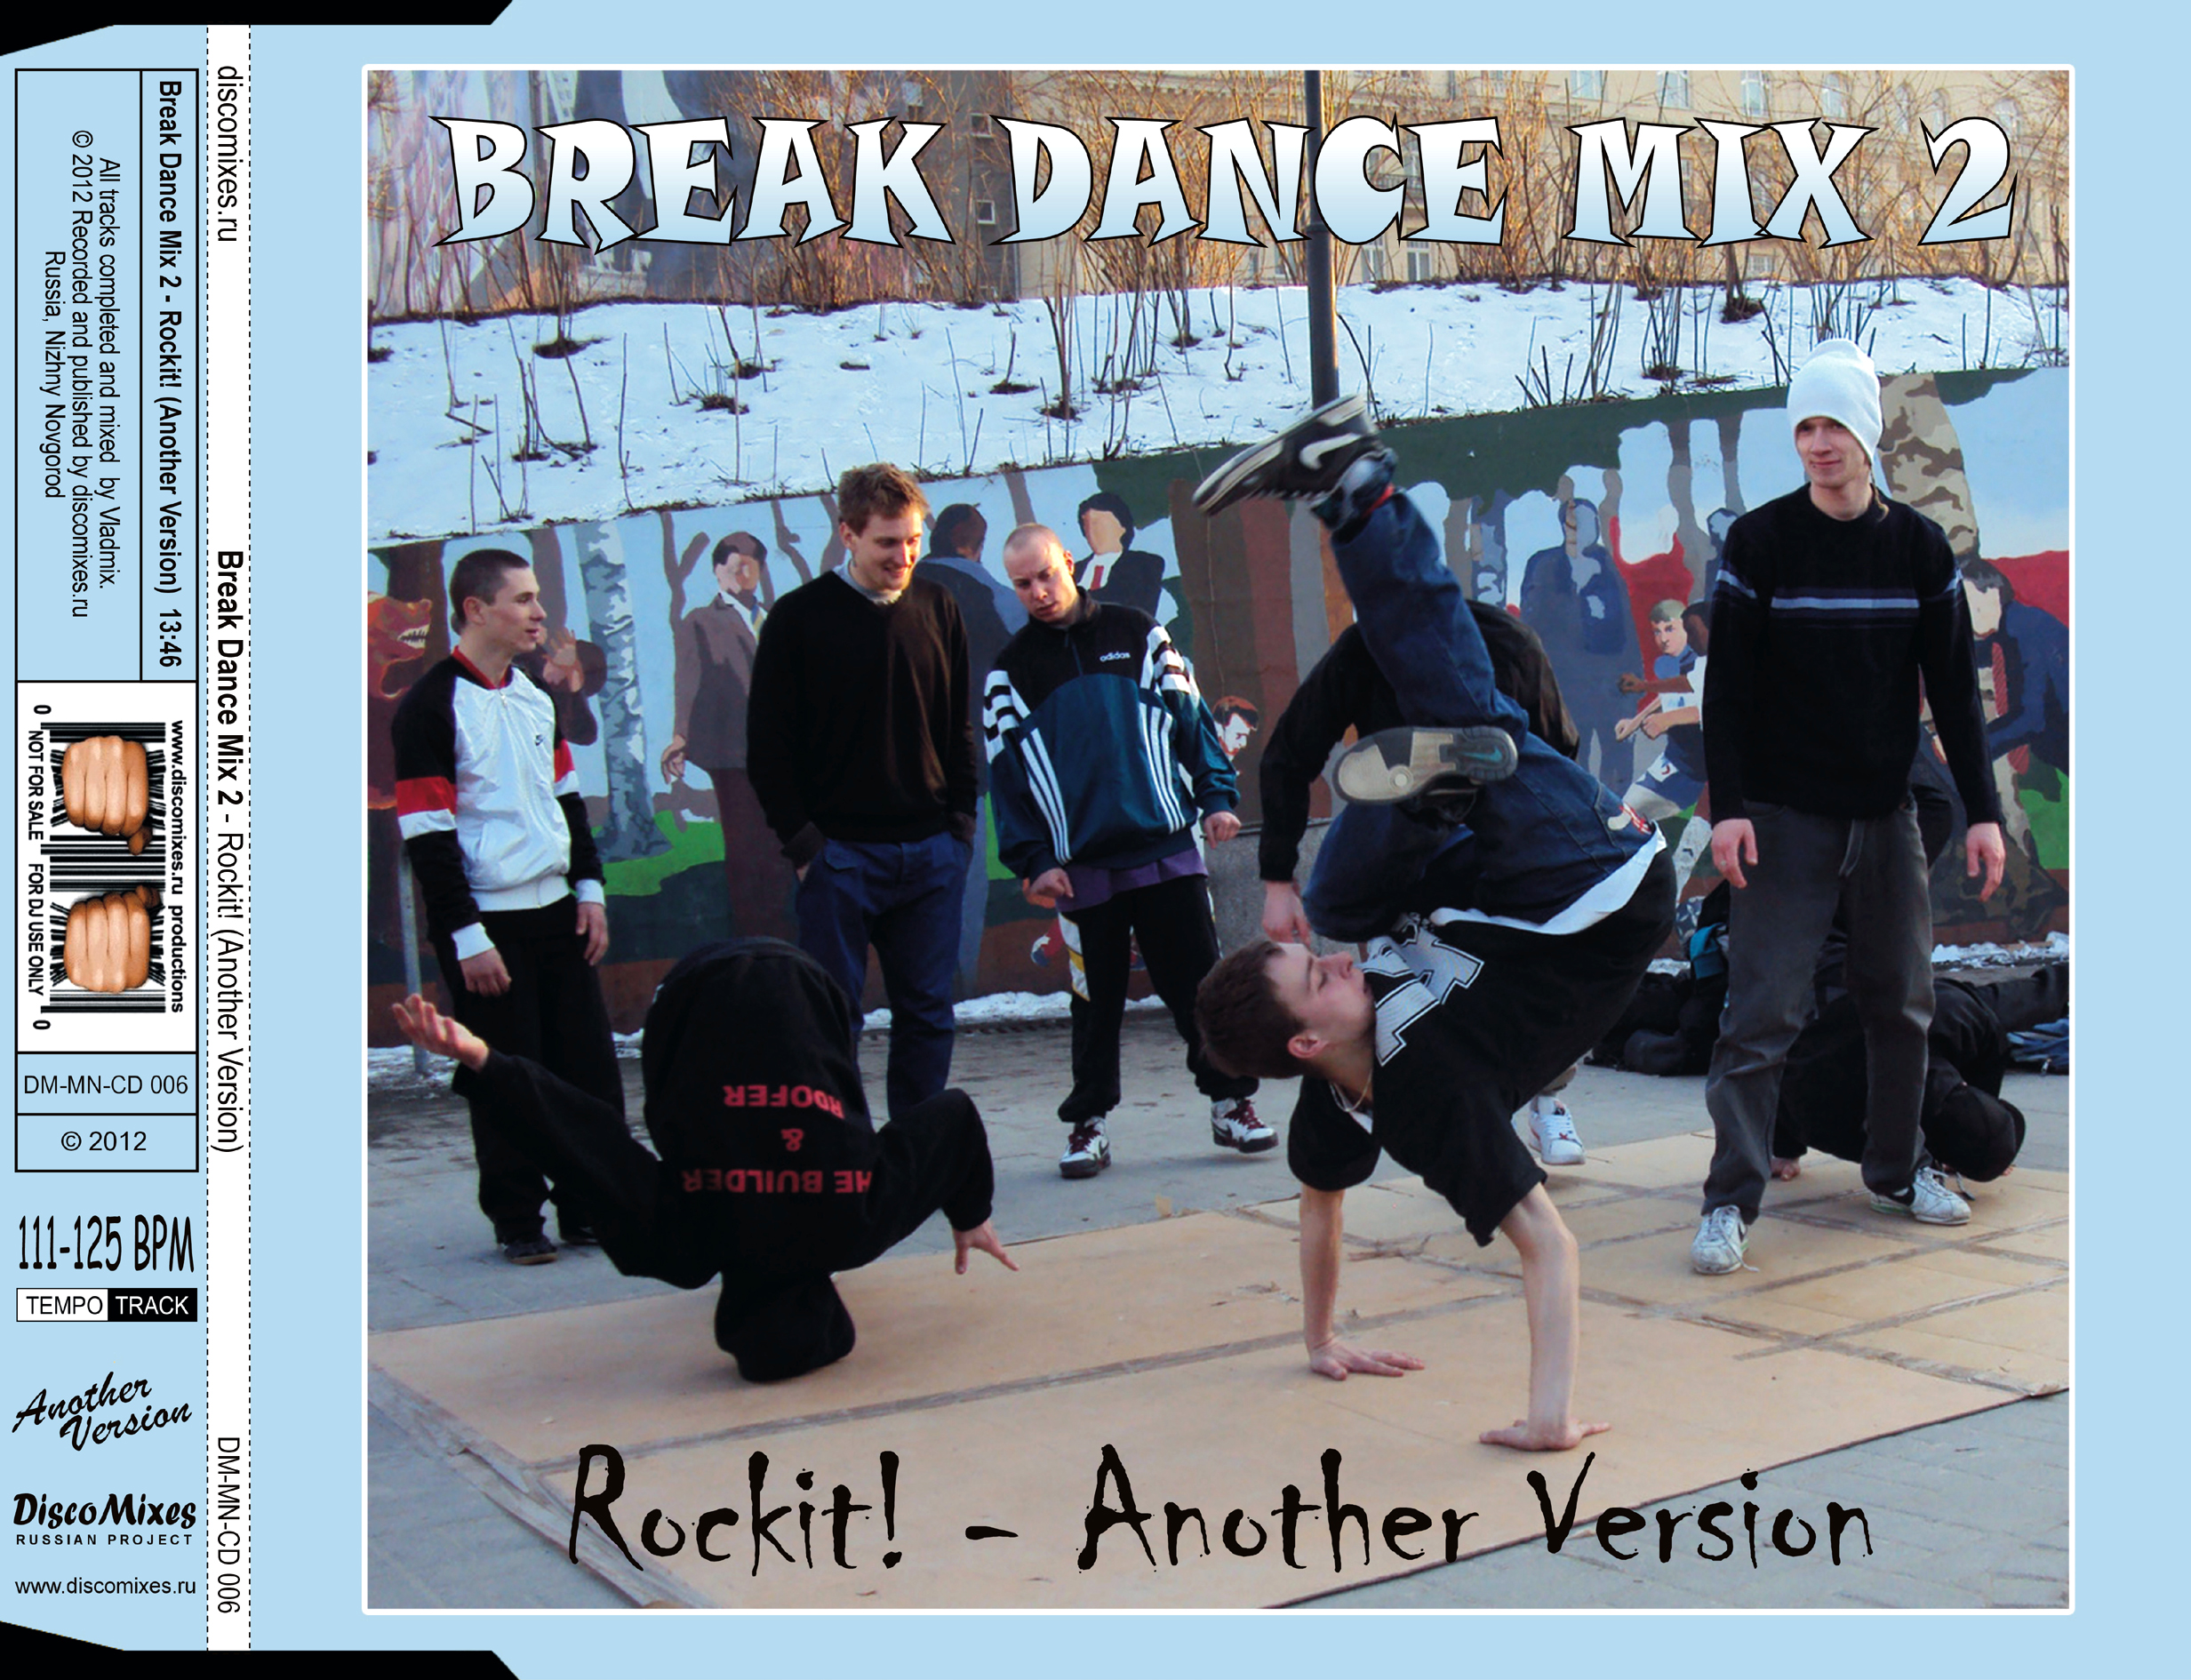 BreakDance Mix 2 - Rockit! (Another Version)